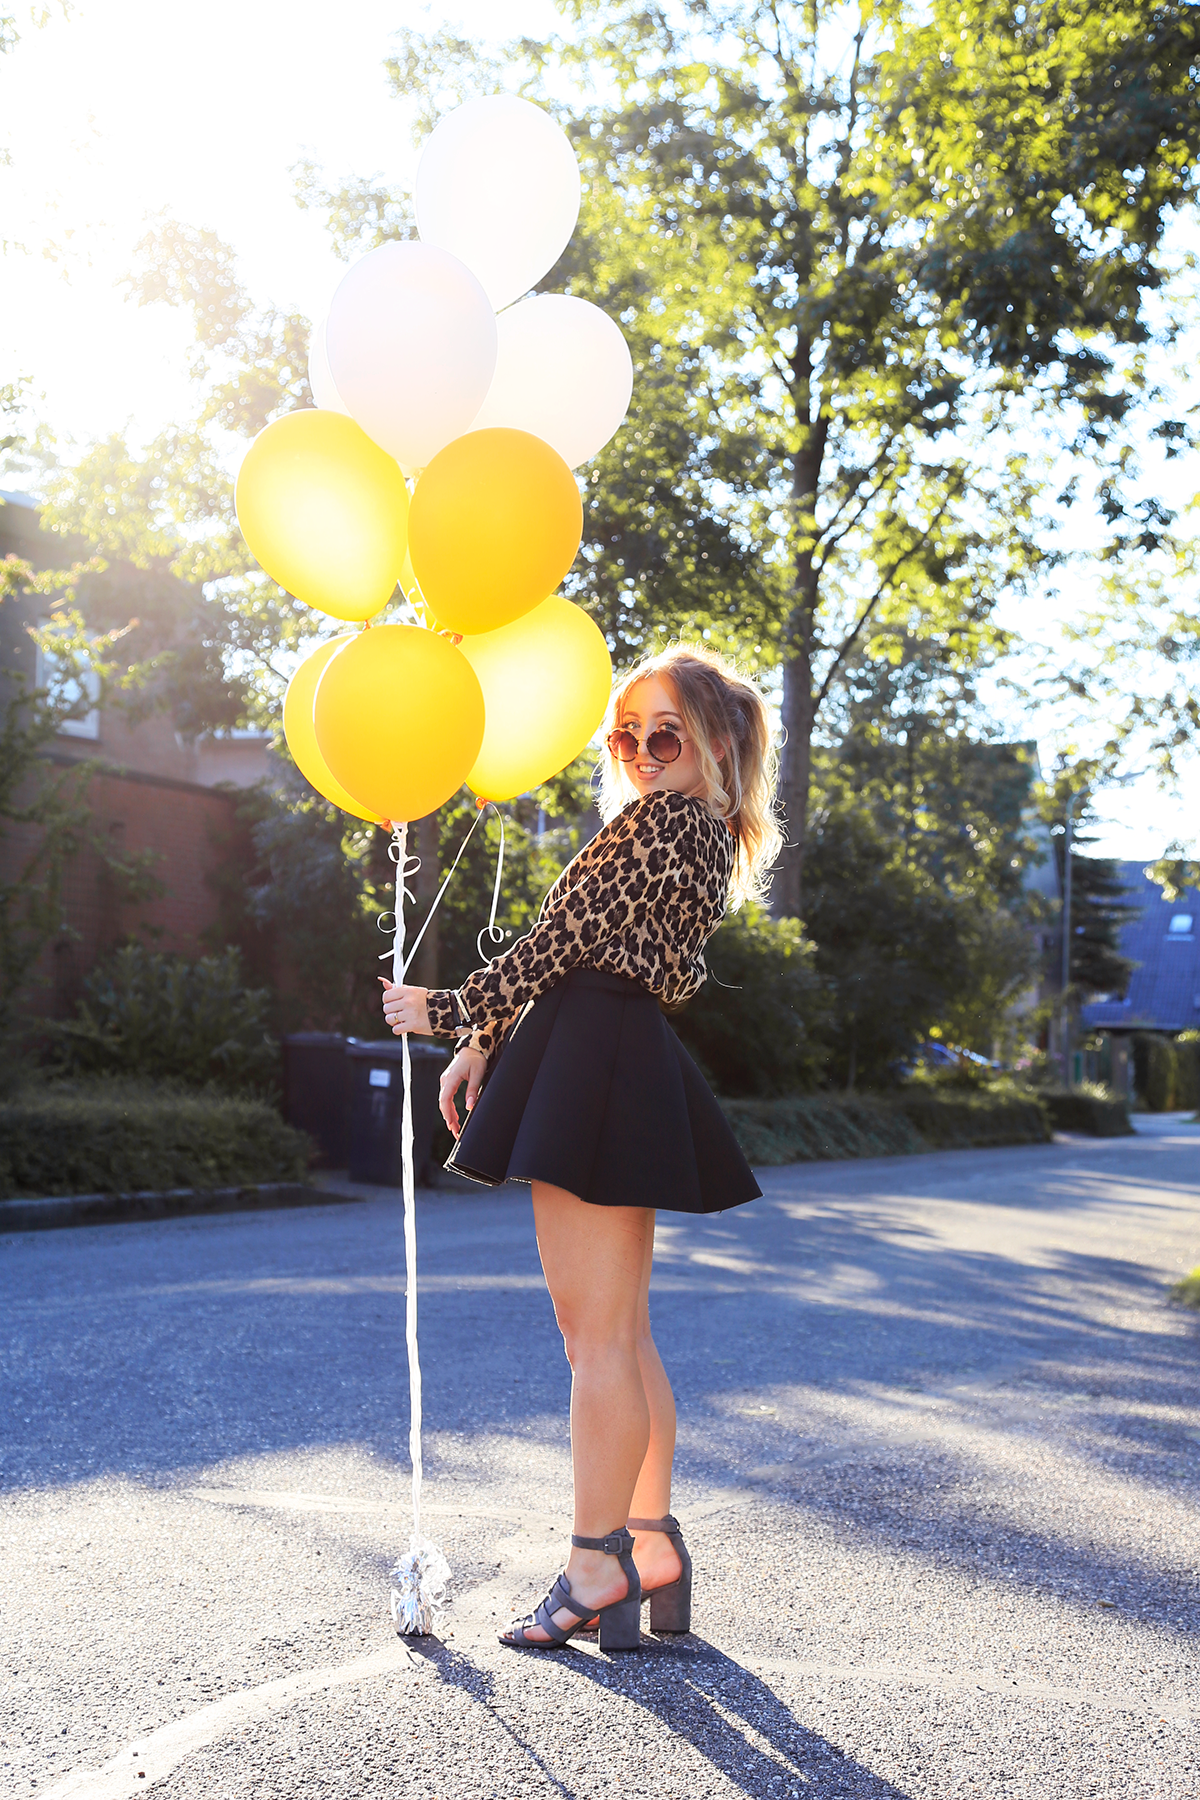 OUTFIT OF THE DAY | Golden Balloons